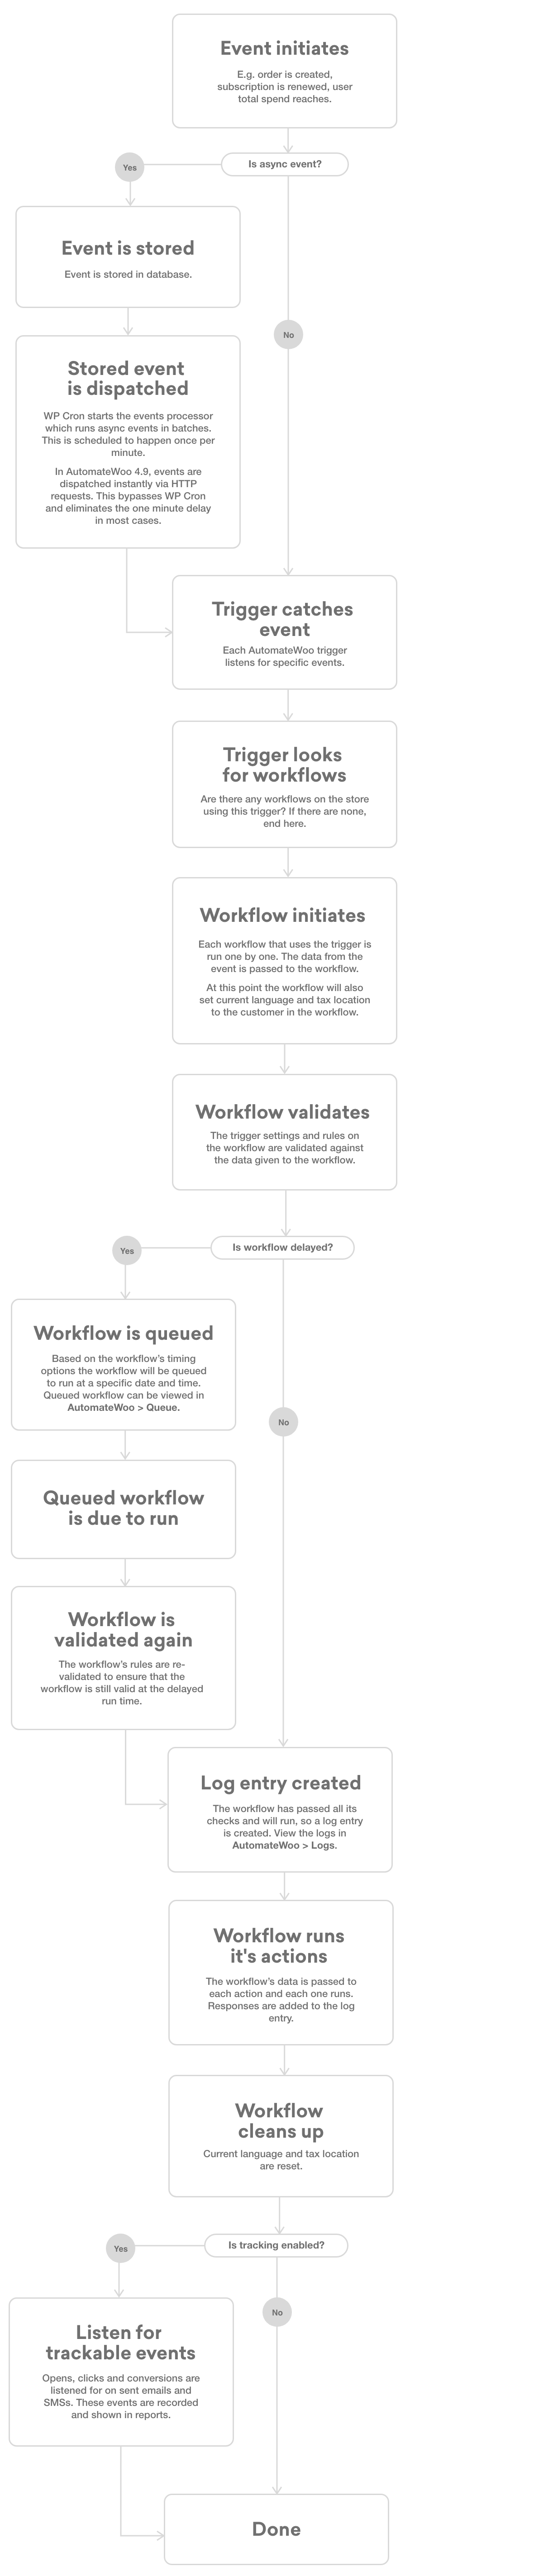 AutomateWoo-Life-cycle-of-an-event-based-workflow